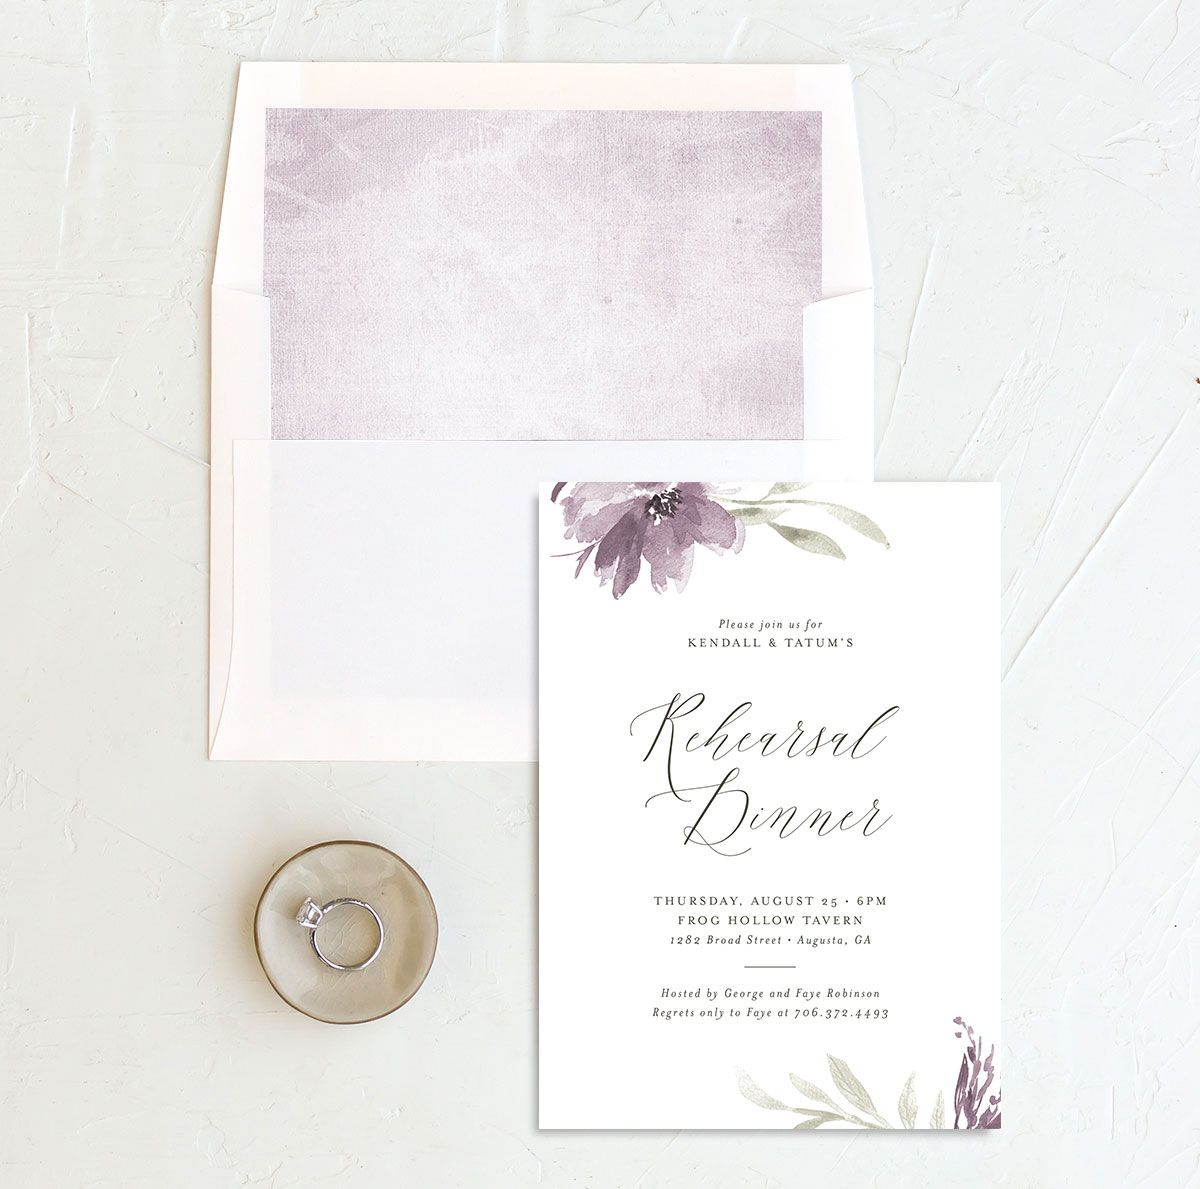 Muted Floral Rehearsal Dinner Invitation front envelope liner purple